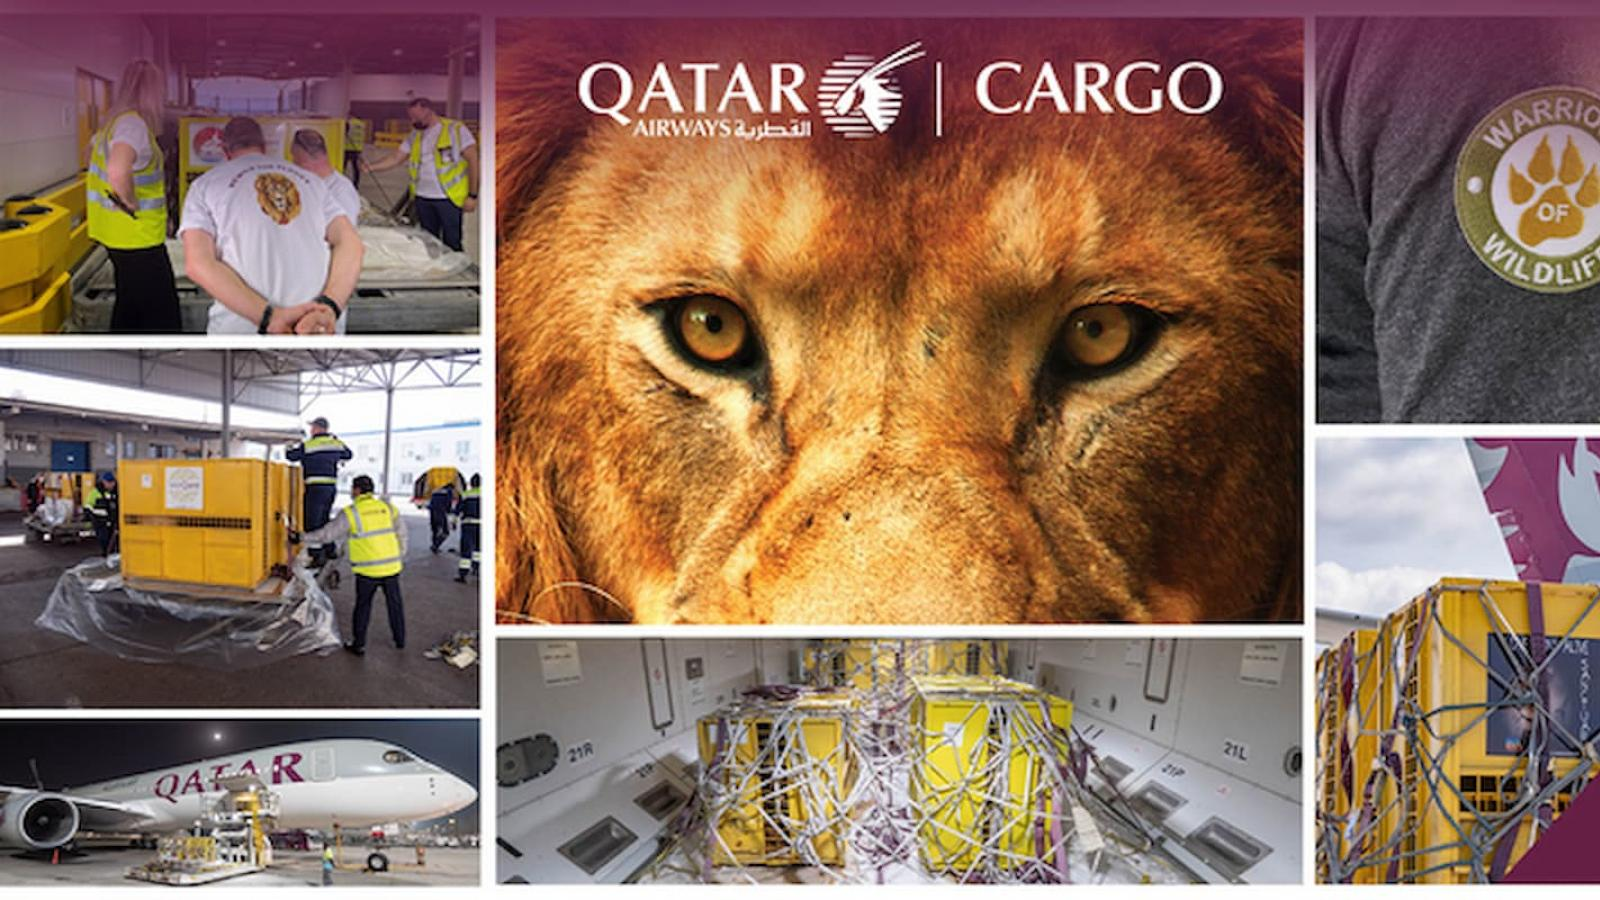 Qatar Airways Cargo returns rescued lions to their natural habitat for free